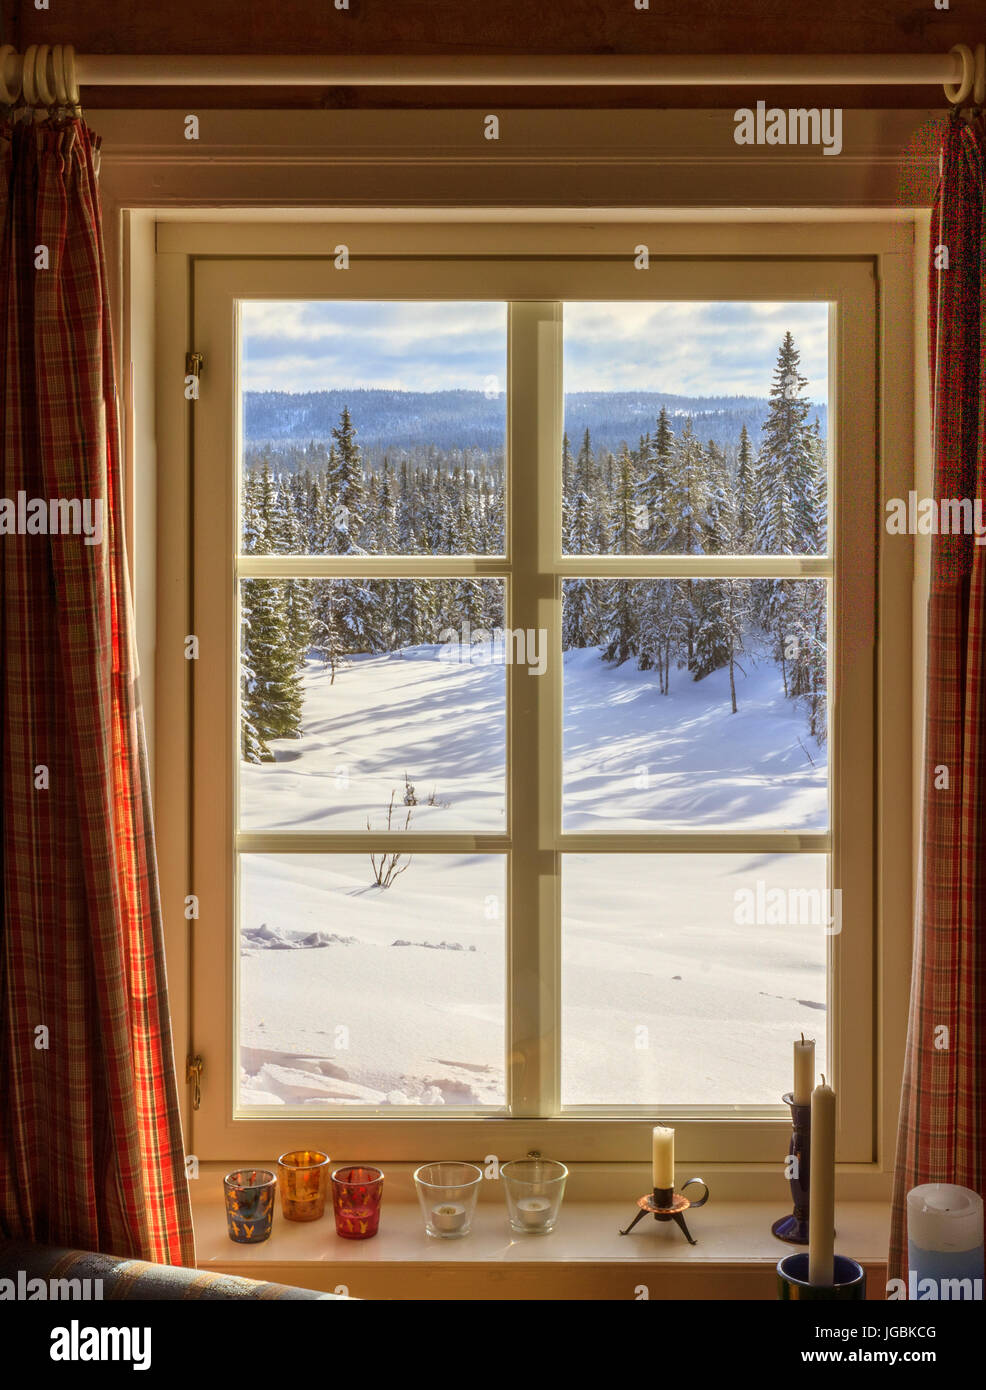 Looking Through An Old Squared Window Outside Is Snow And